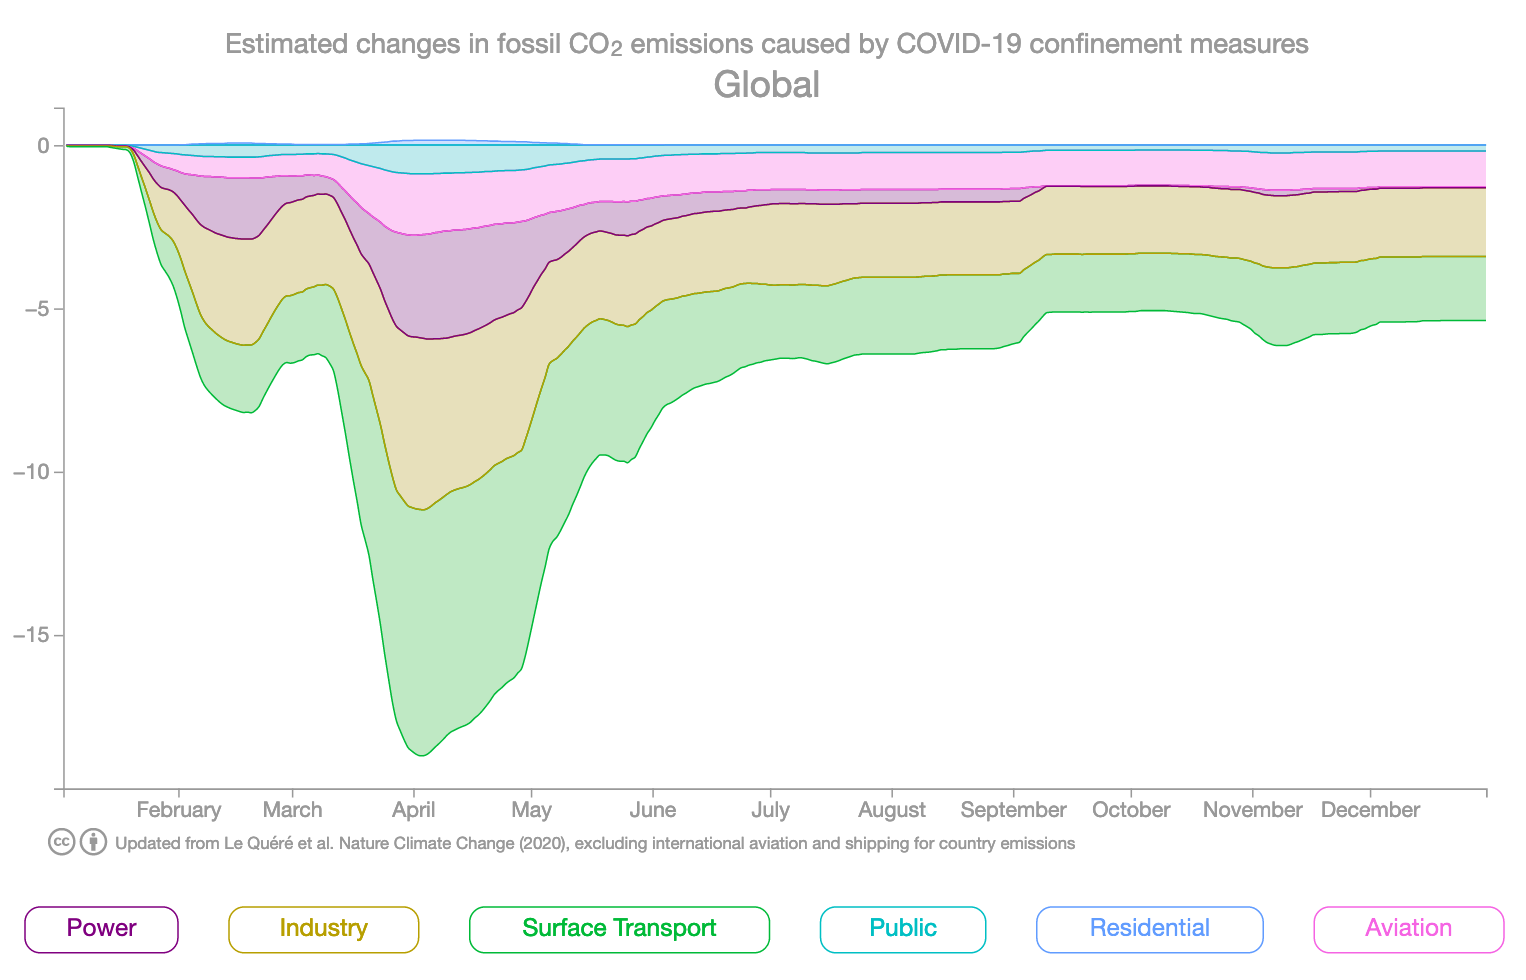 GHG emissions drop due to COVID